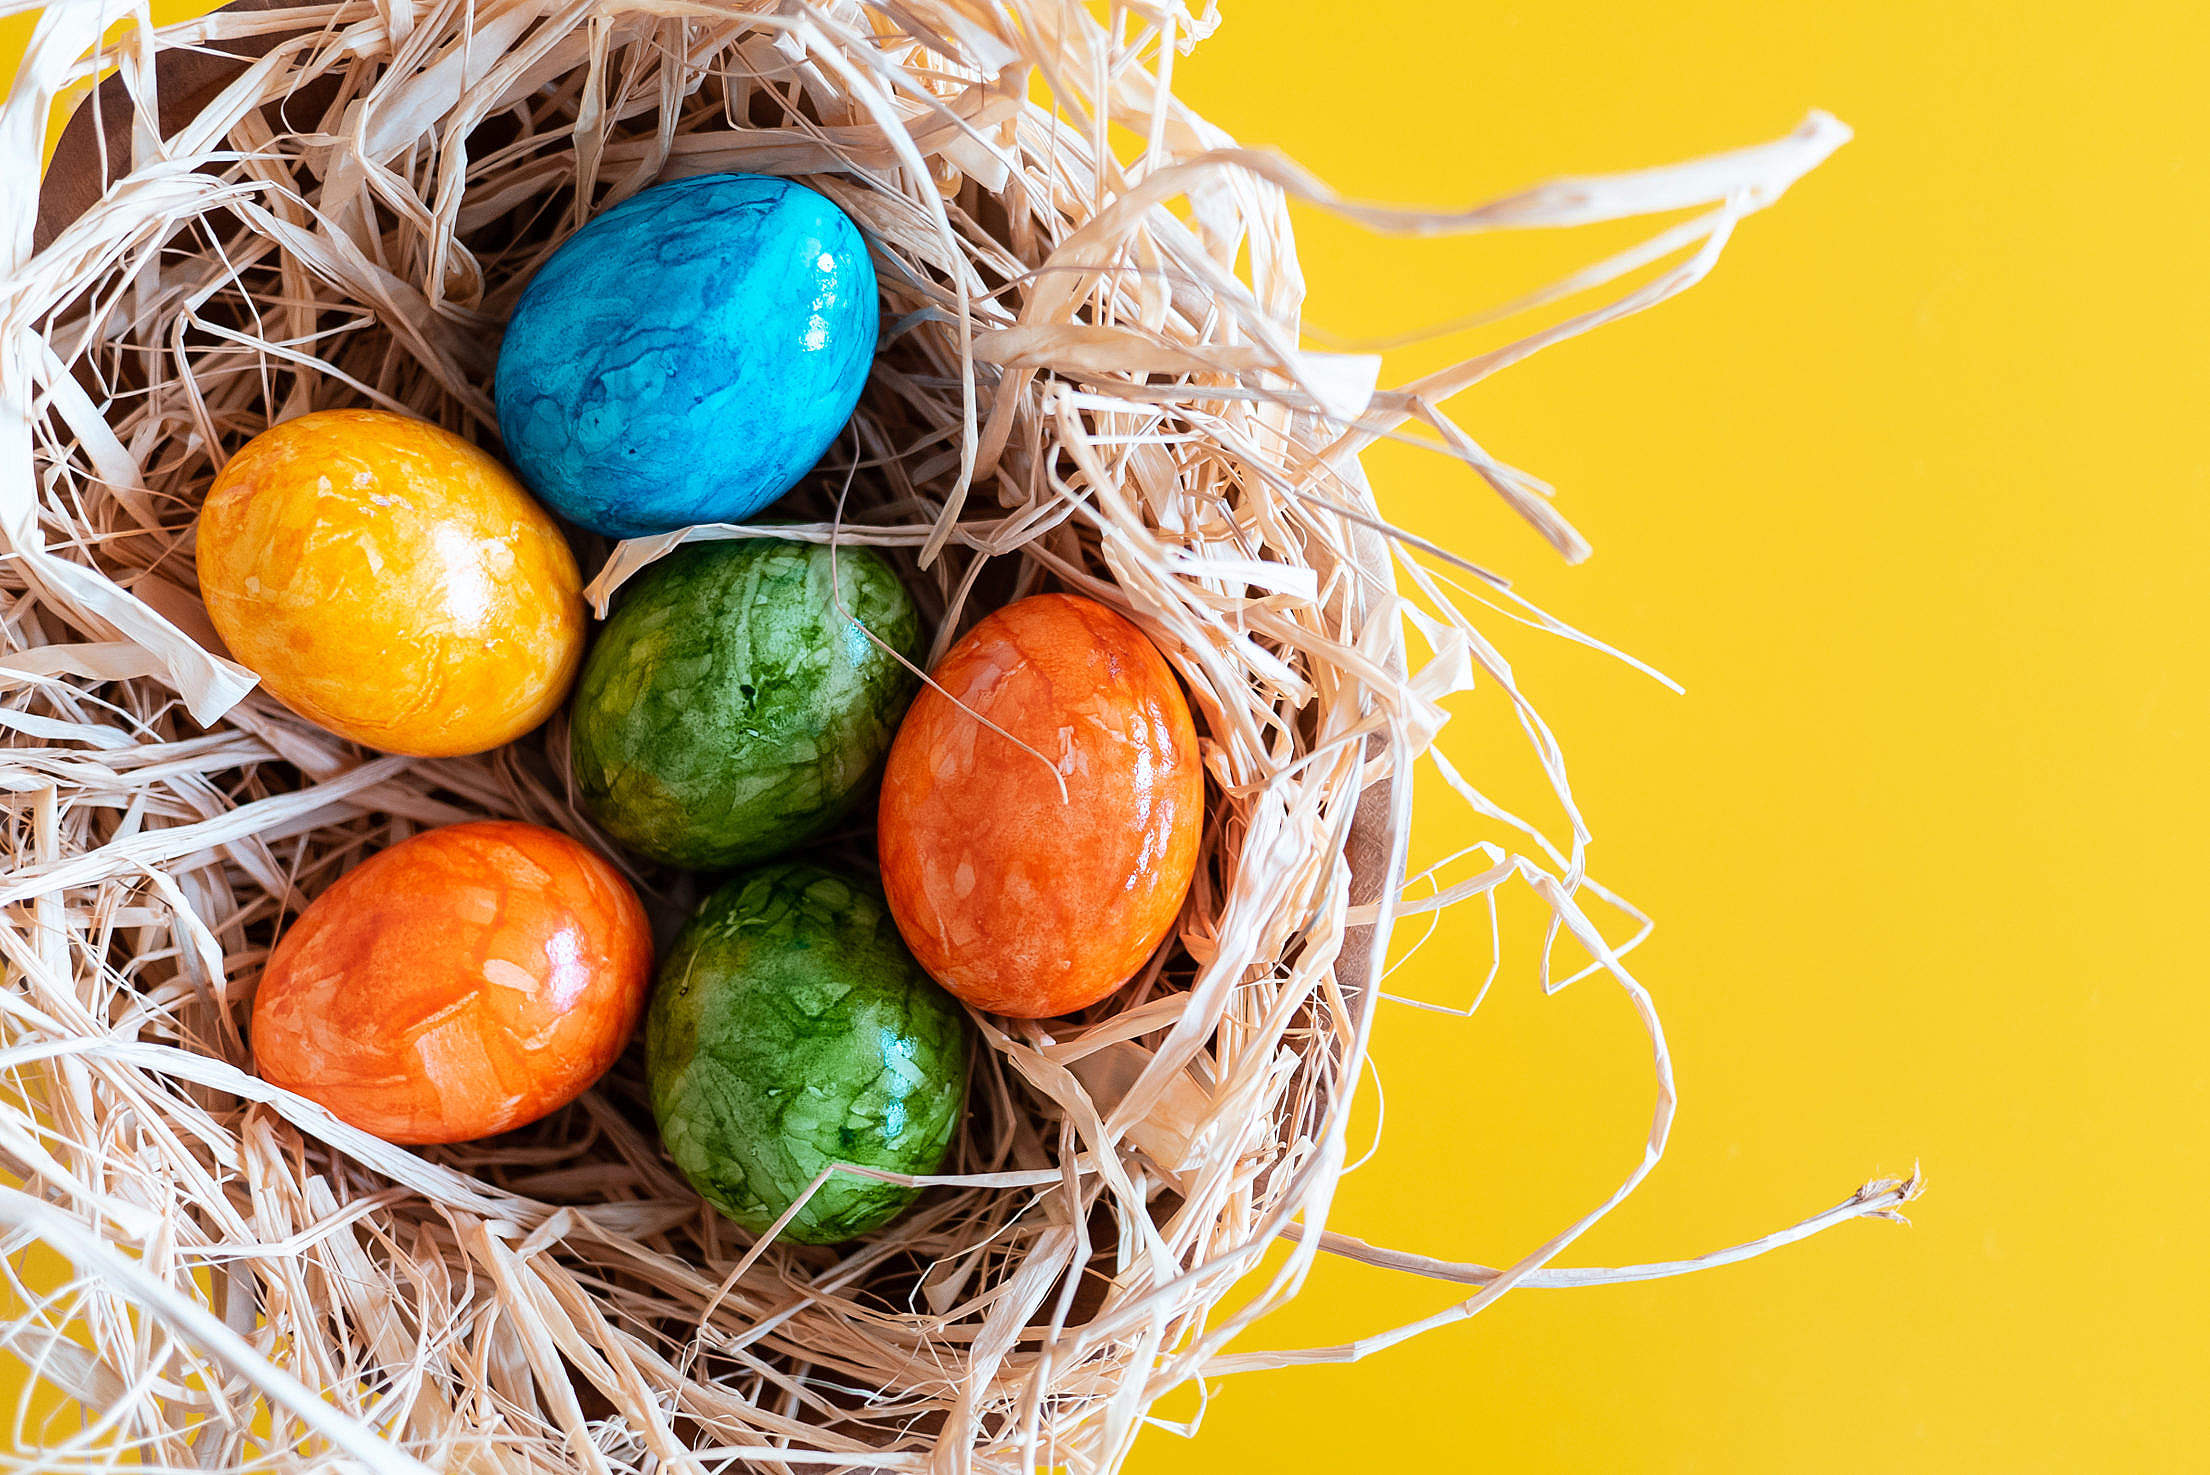 Dyed Eggs Prepared for Easter Holidays Free Stock Photo